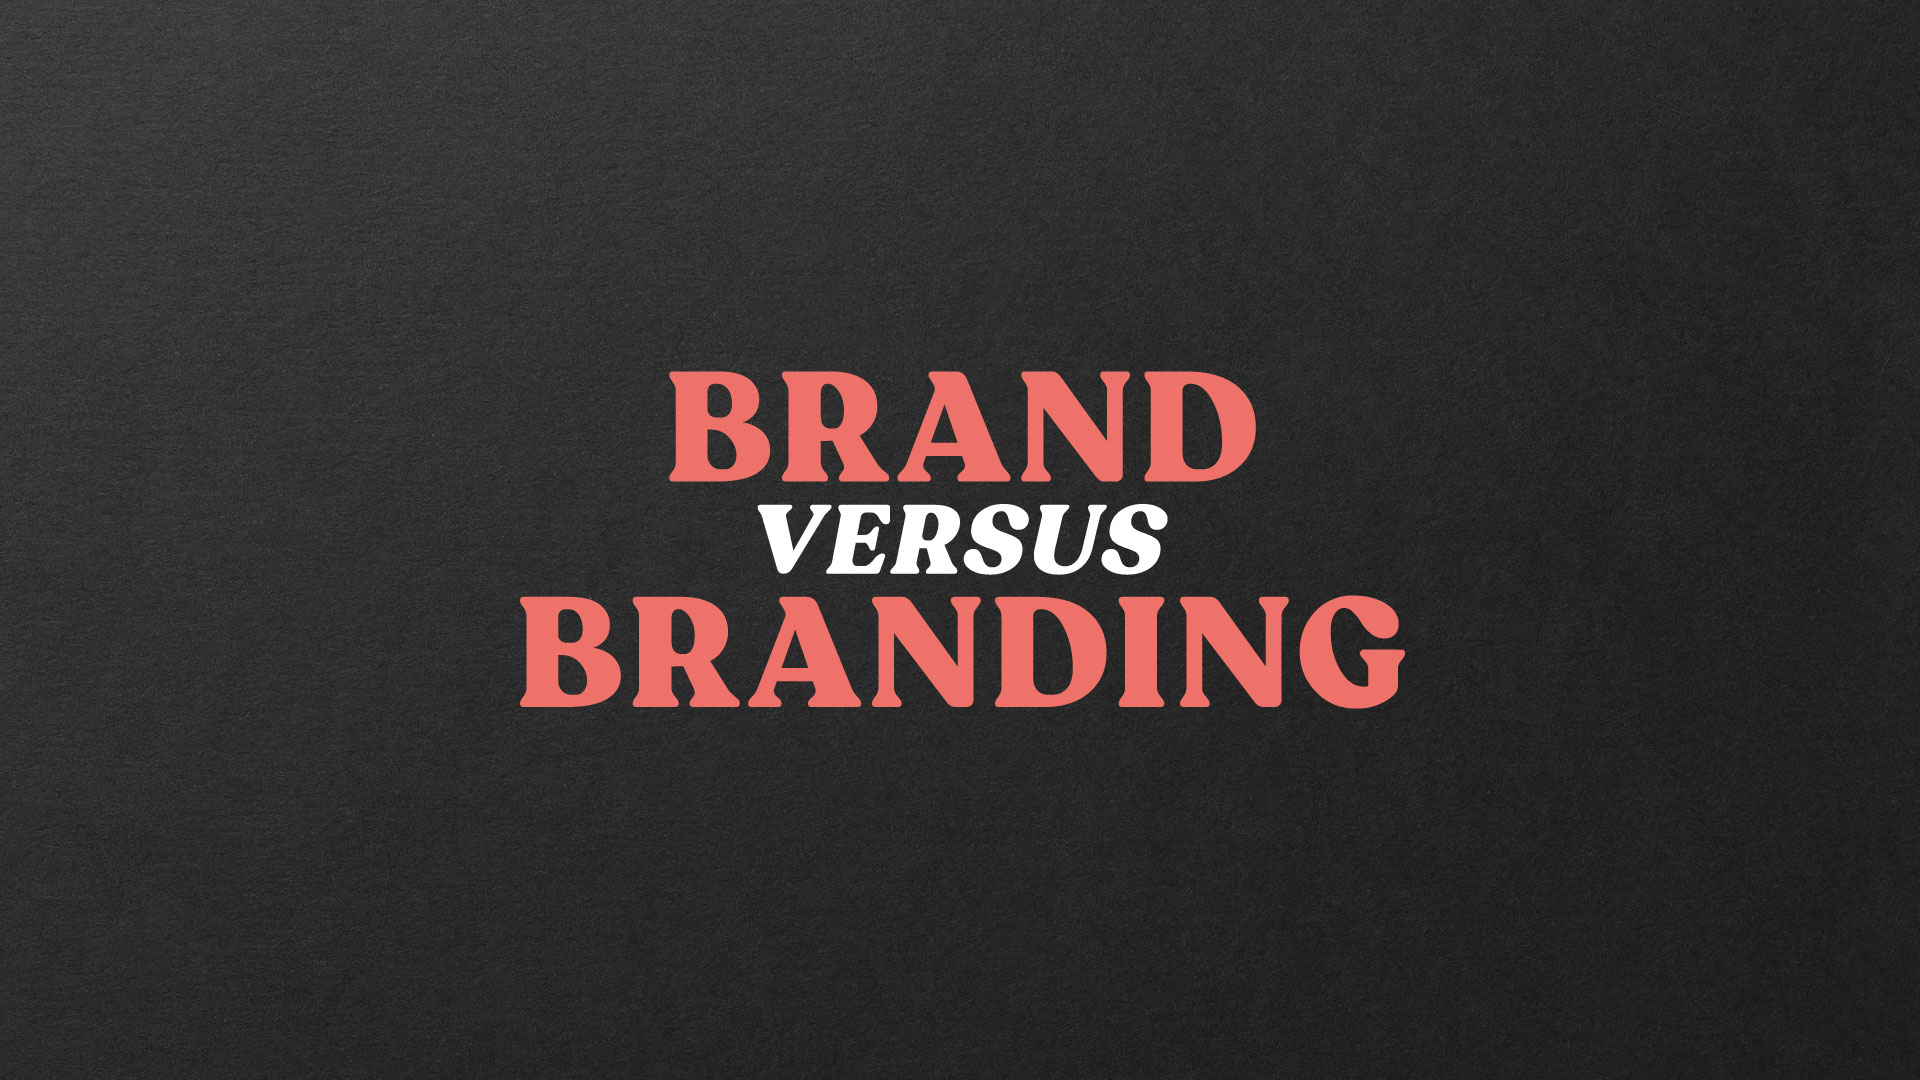 The difference between Brand and Branding